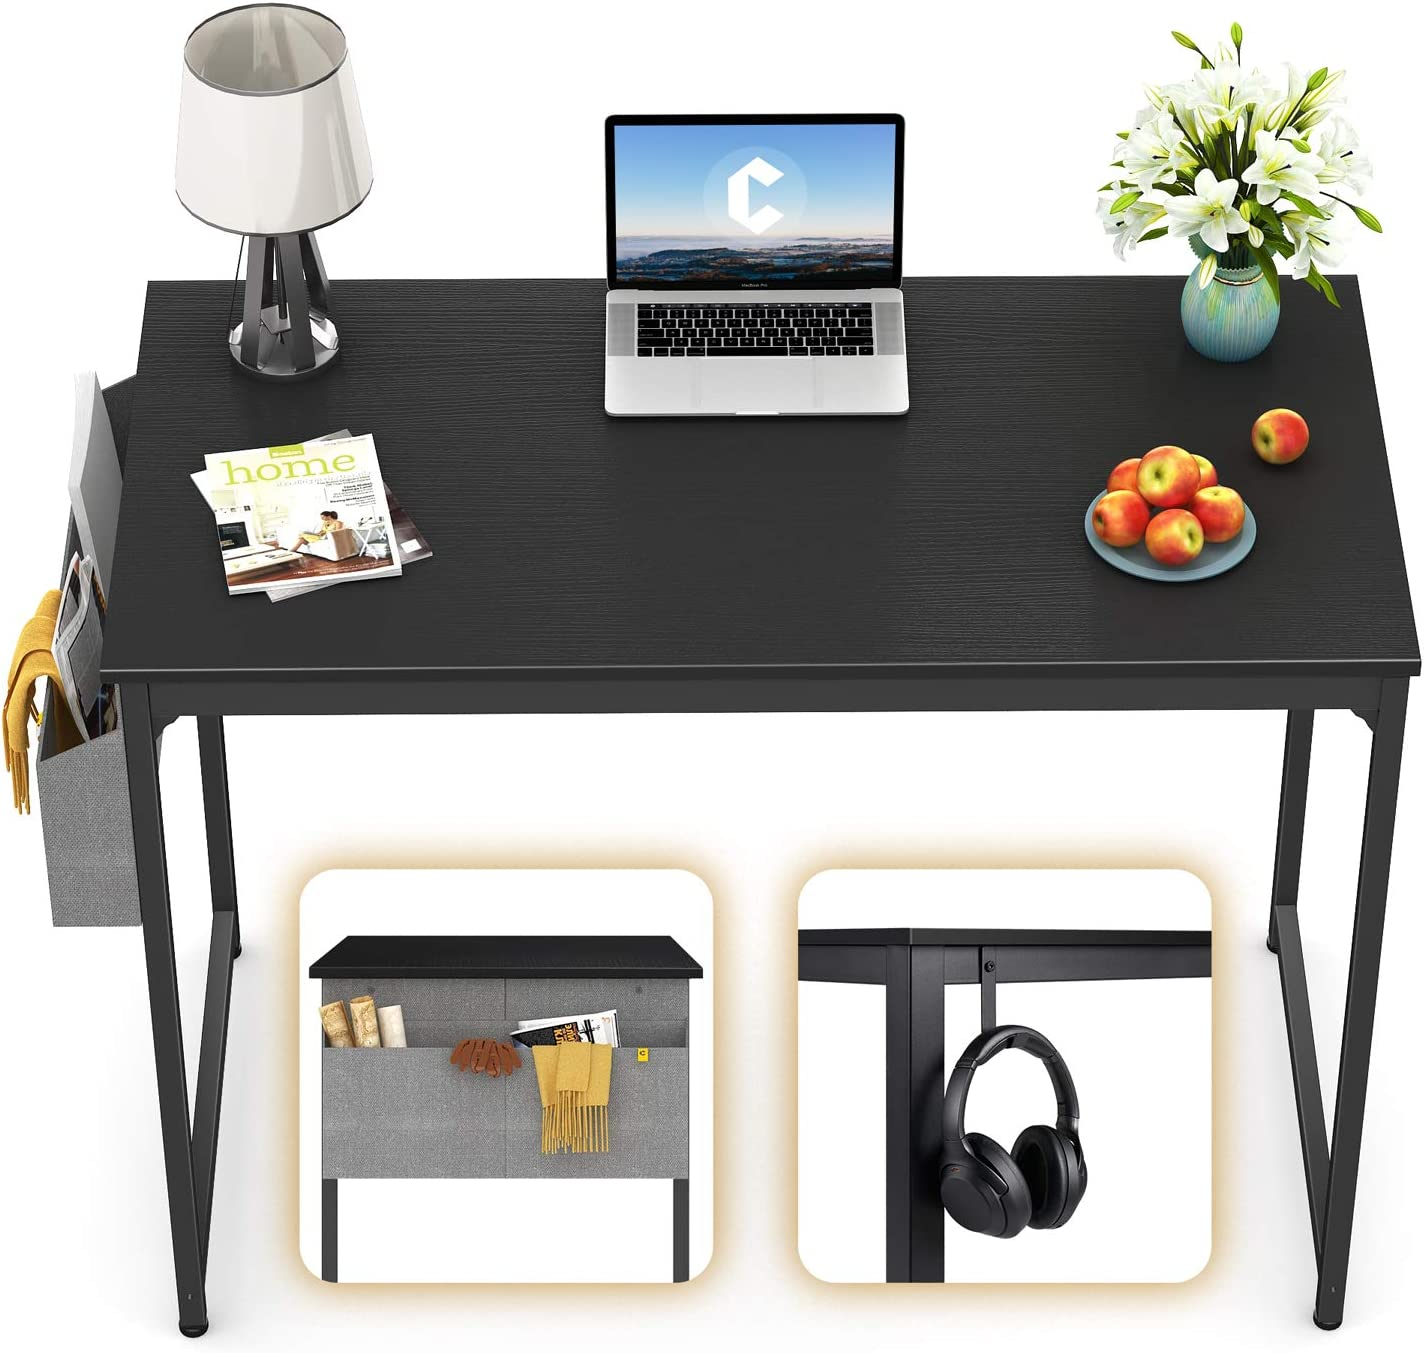 "CubiCubi Computer Desk 40"" Study Writing Table for Home Office, Modern Simple Style PC Desk, Black Metal Frame, Black"